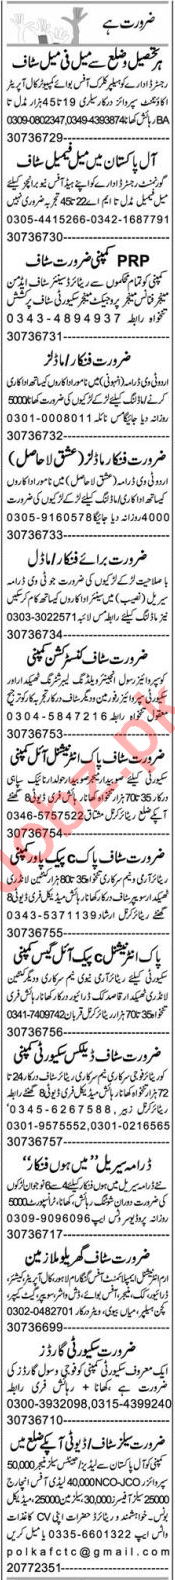 Recovery Officer & Promotion Officer Jobs 2020 in Multan